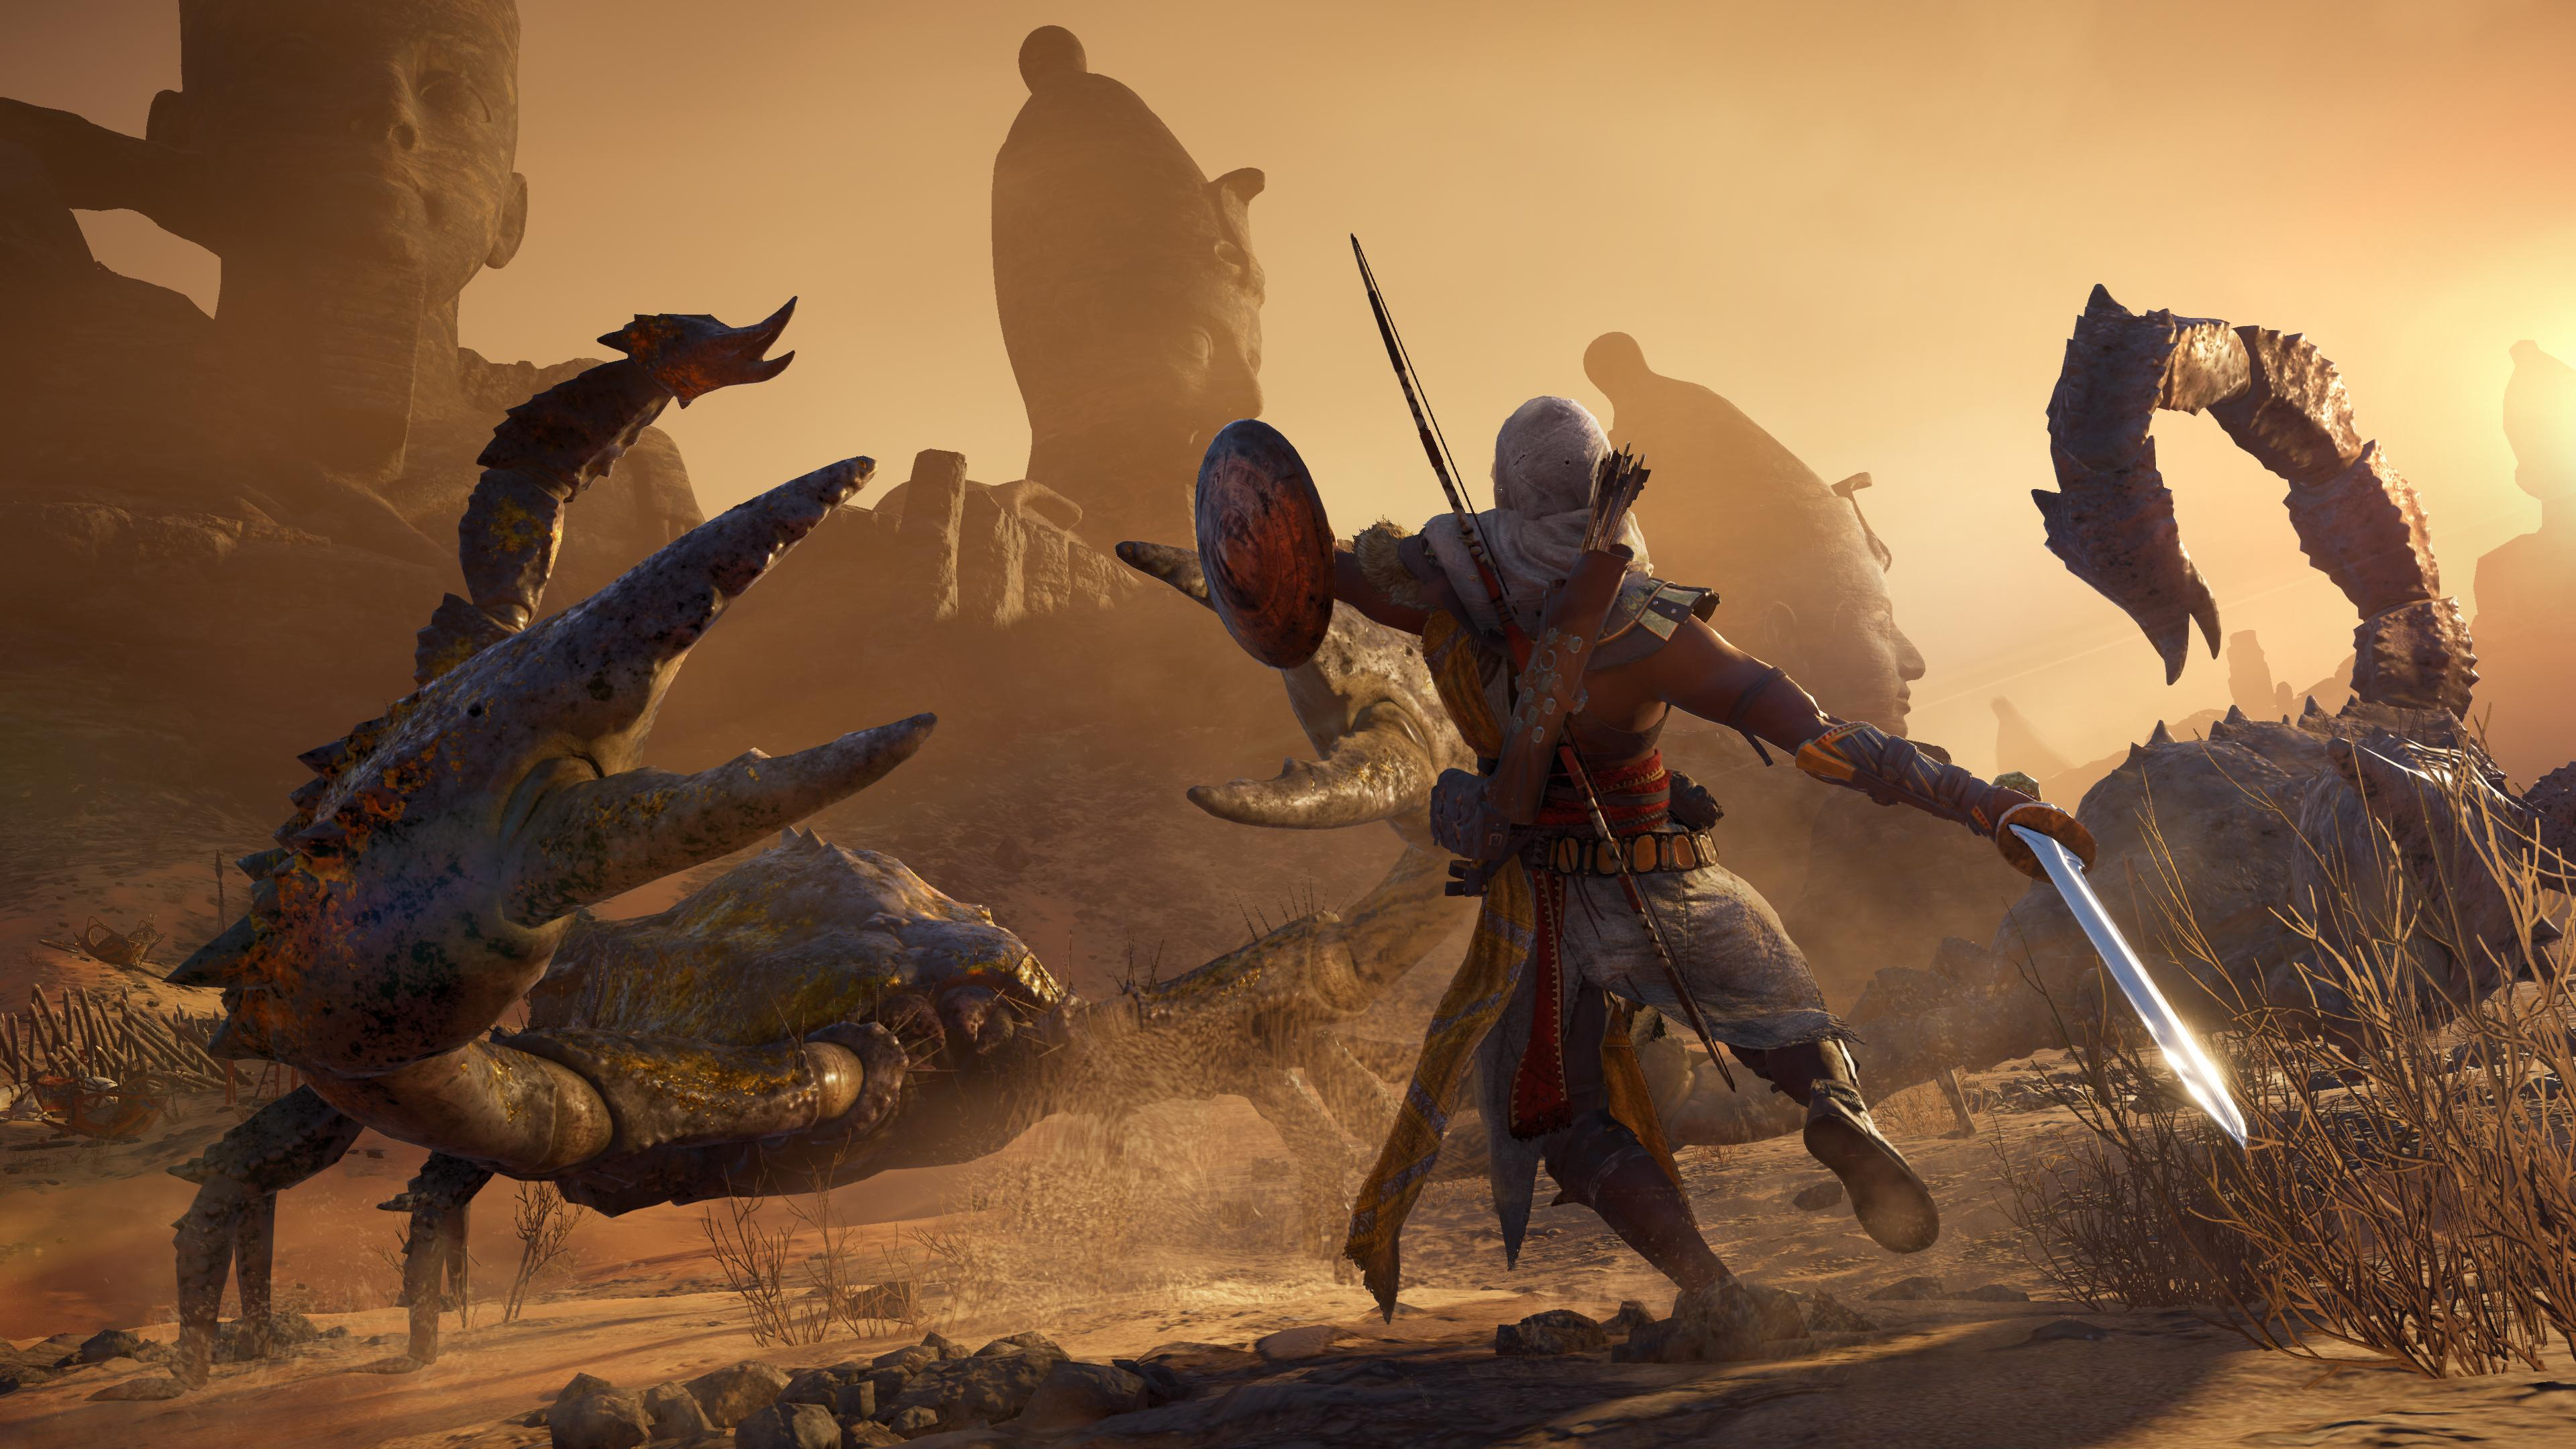 Assassin's Creed Origins EGX 2017 Hands-On Impressions 2